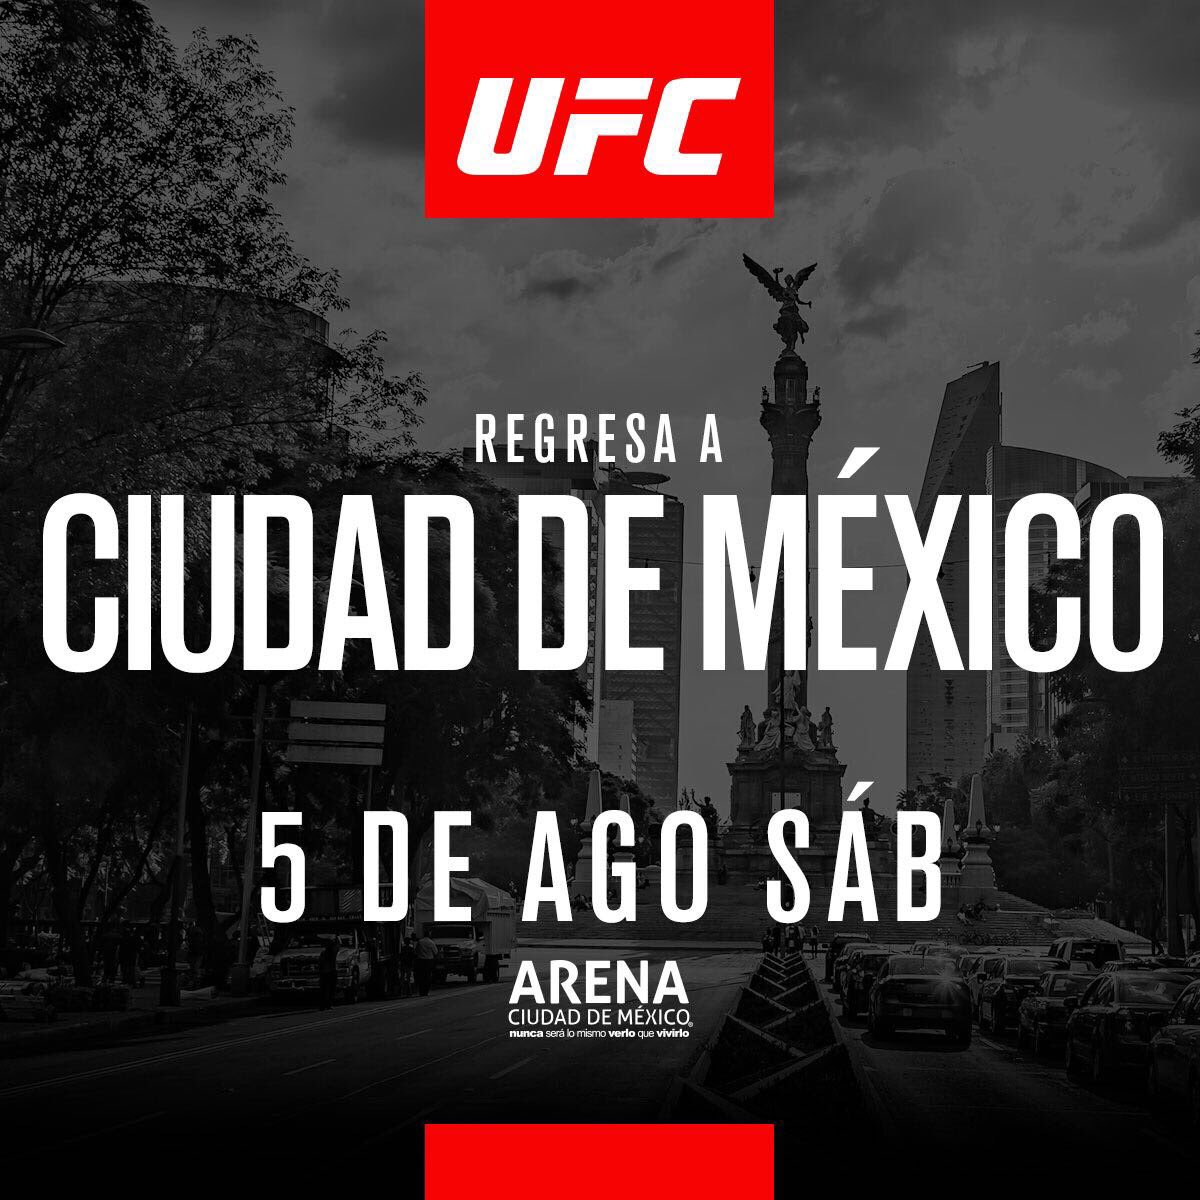 Poster/affiche UFC Fight Night 114 - Mexico City